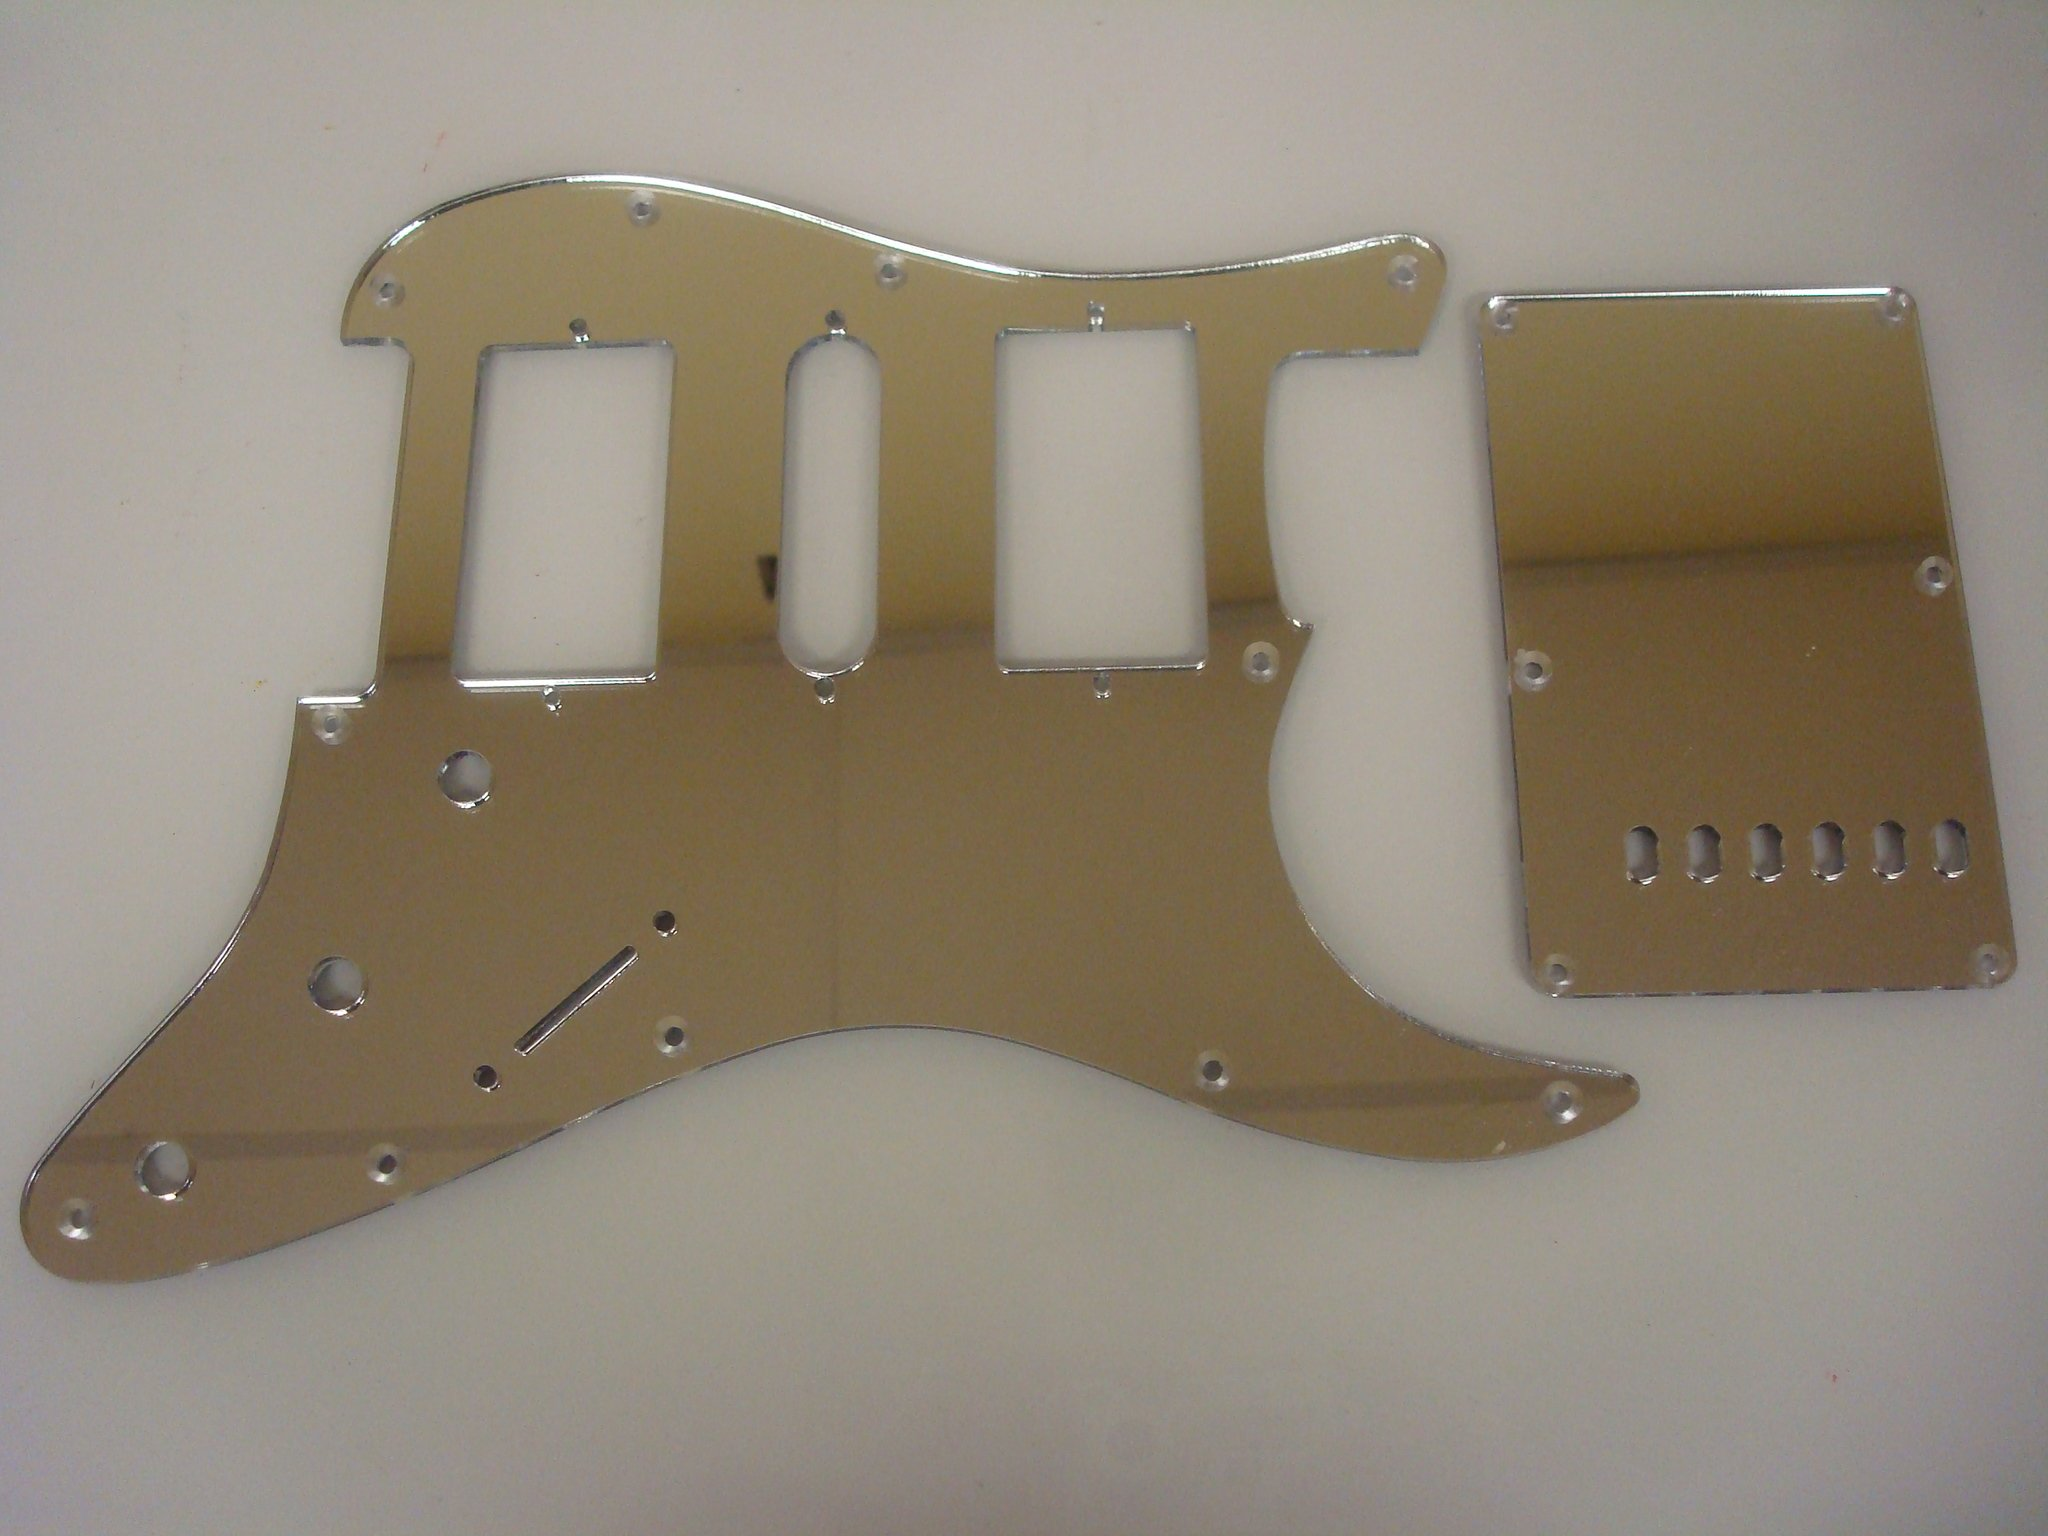 HSH Mirror Acrylic (Chrome Colored) Pickguard Set Fits Fender Stratocaster